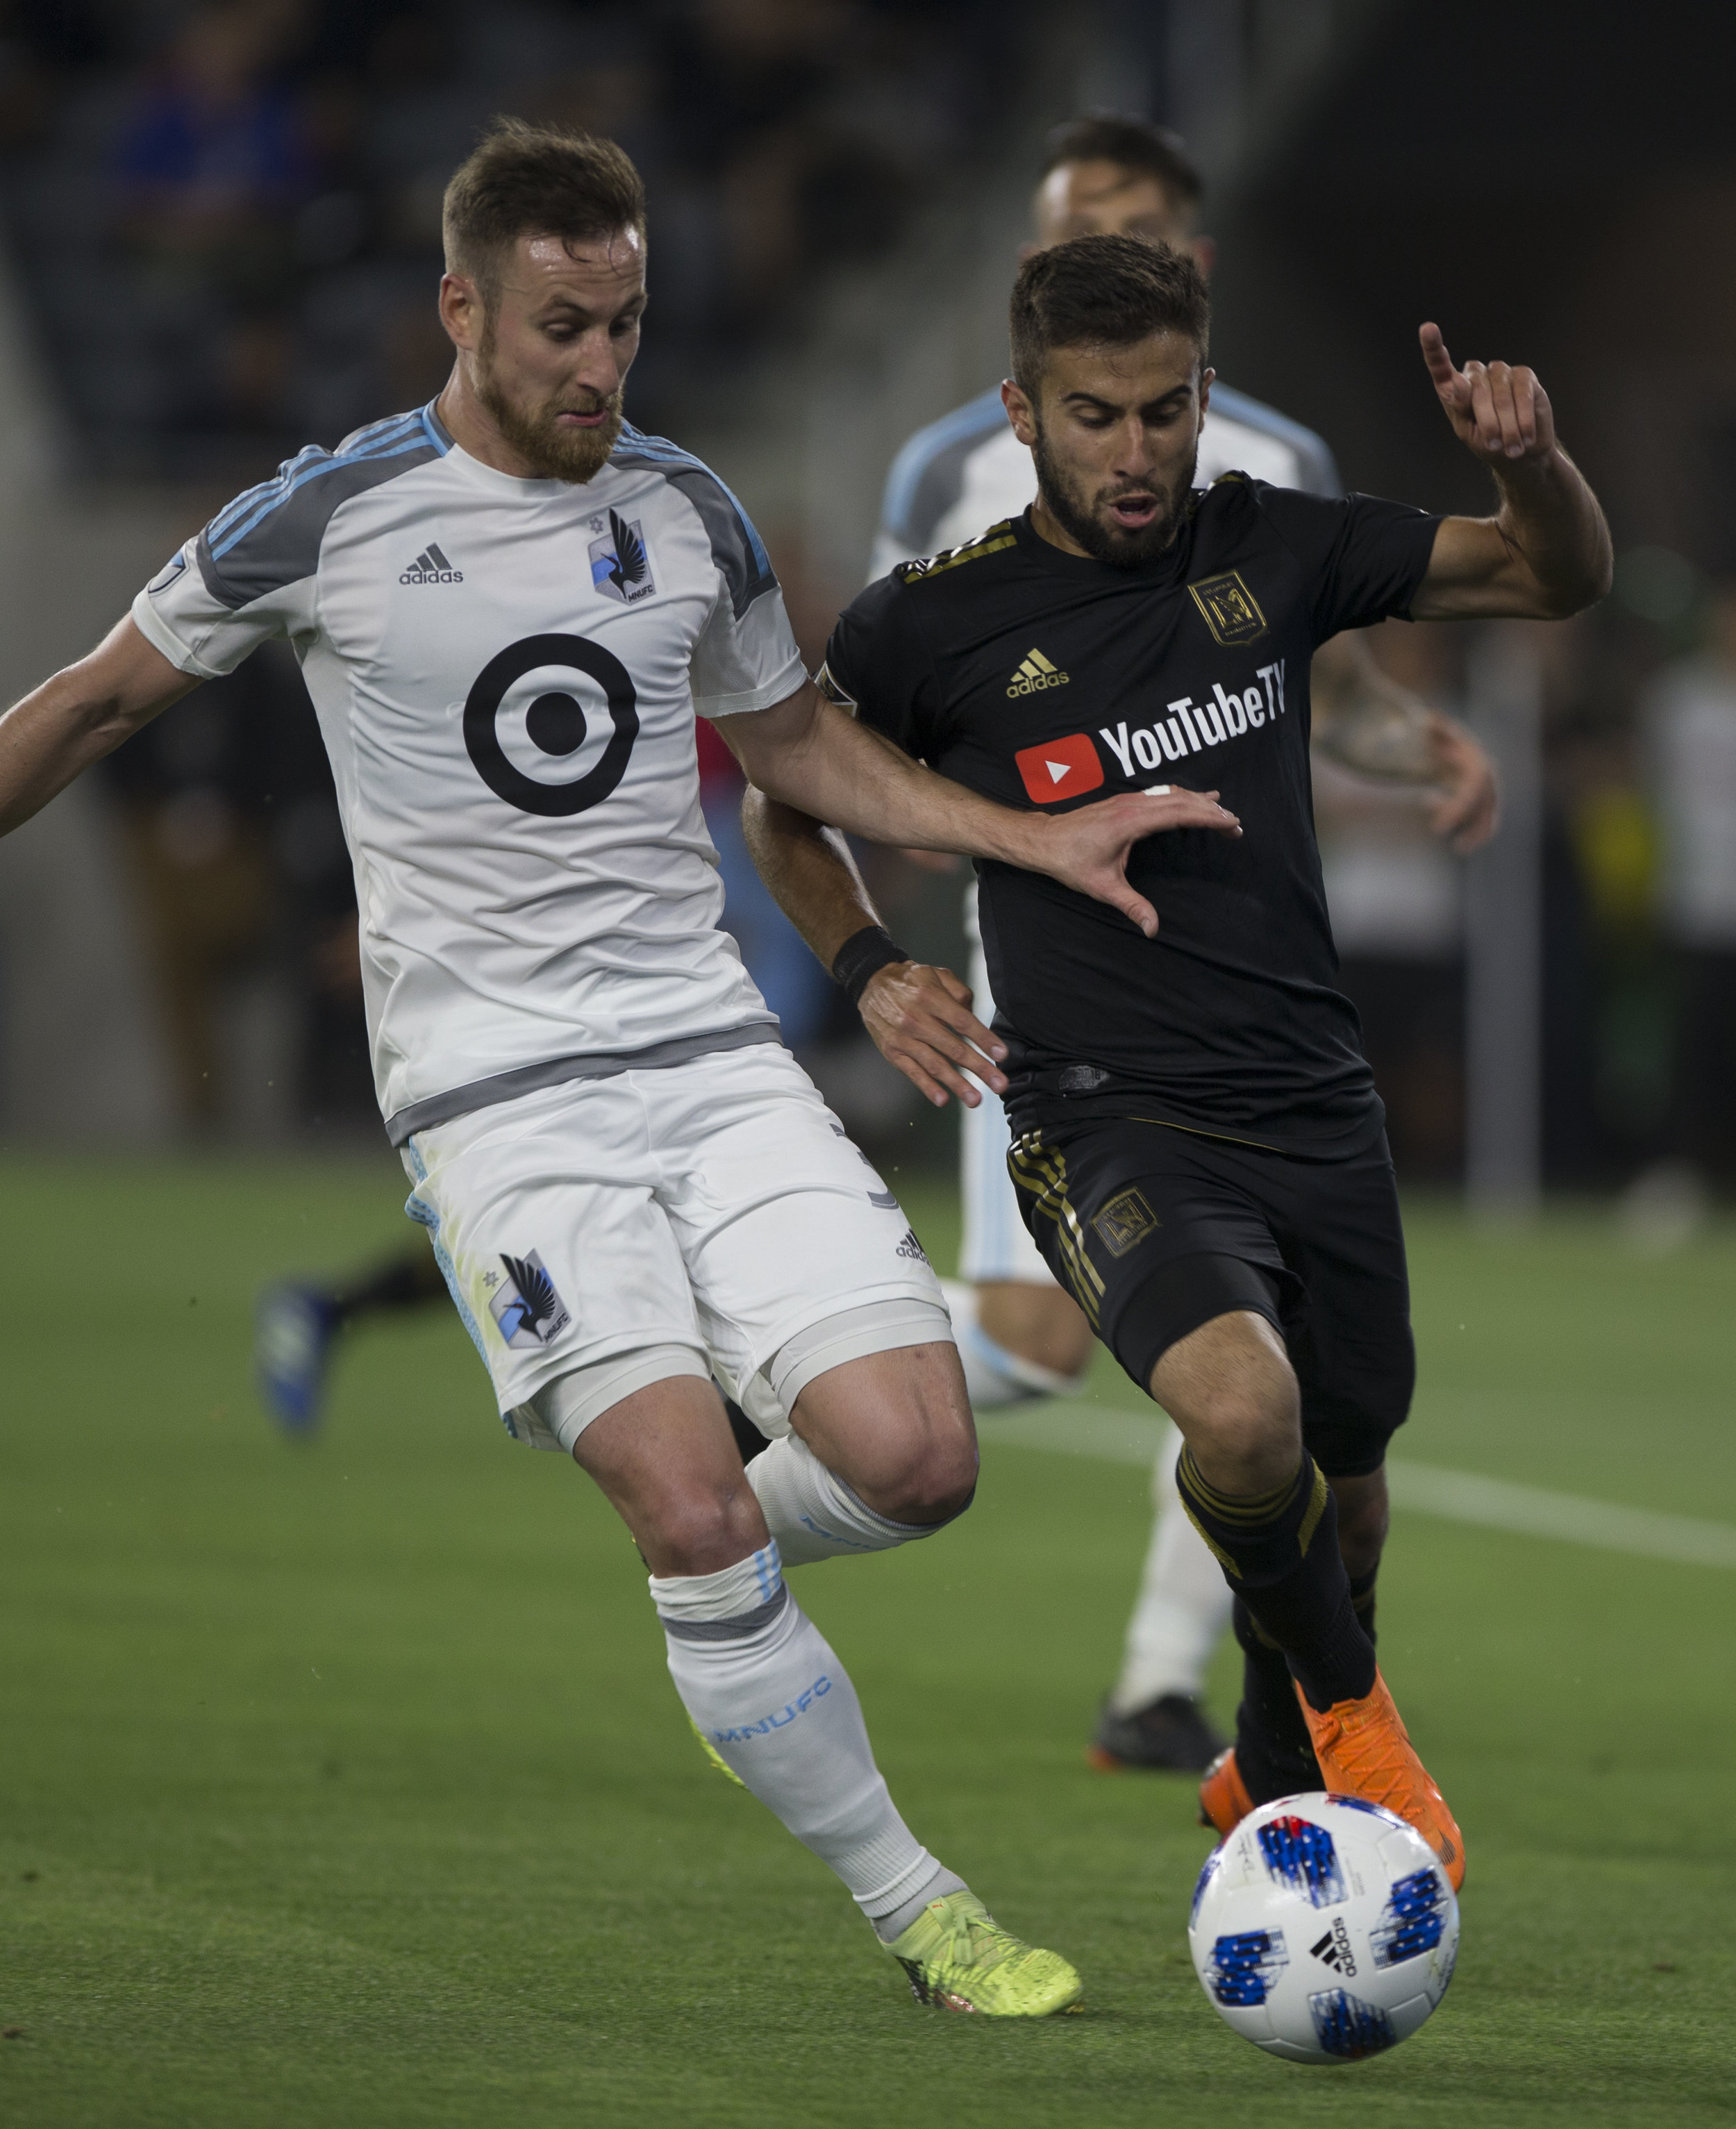 Minnesota United Football Club defender Jerome Thiesson (3, left) battles for the ball against Los Angeles Football Club forward Diego Rossi (9, right) during their match at Banc of California Stadium on May 9, 2018 where the LAFC won 2-0. (Zane Meyer-Thornton/Corsair Photo)